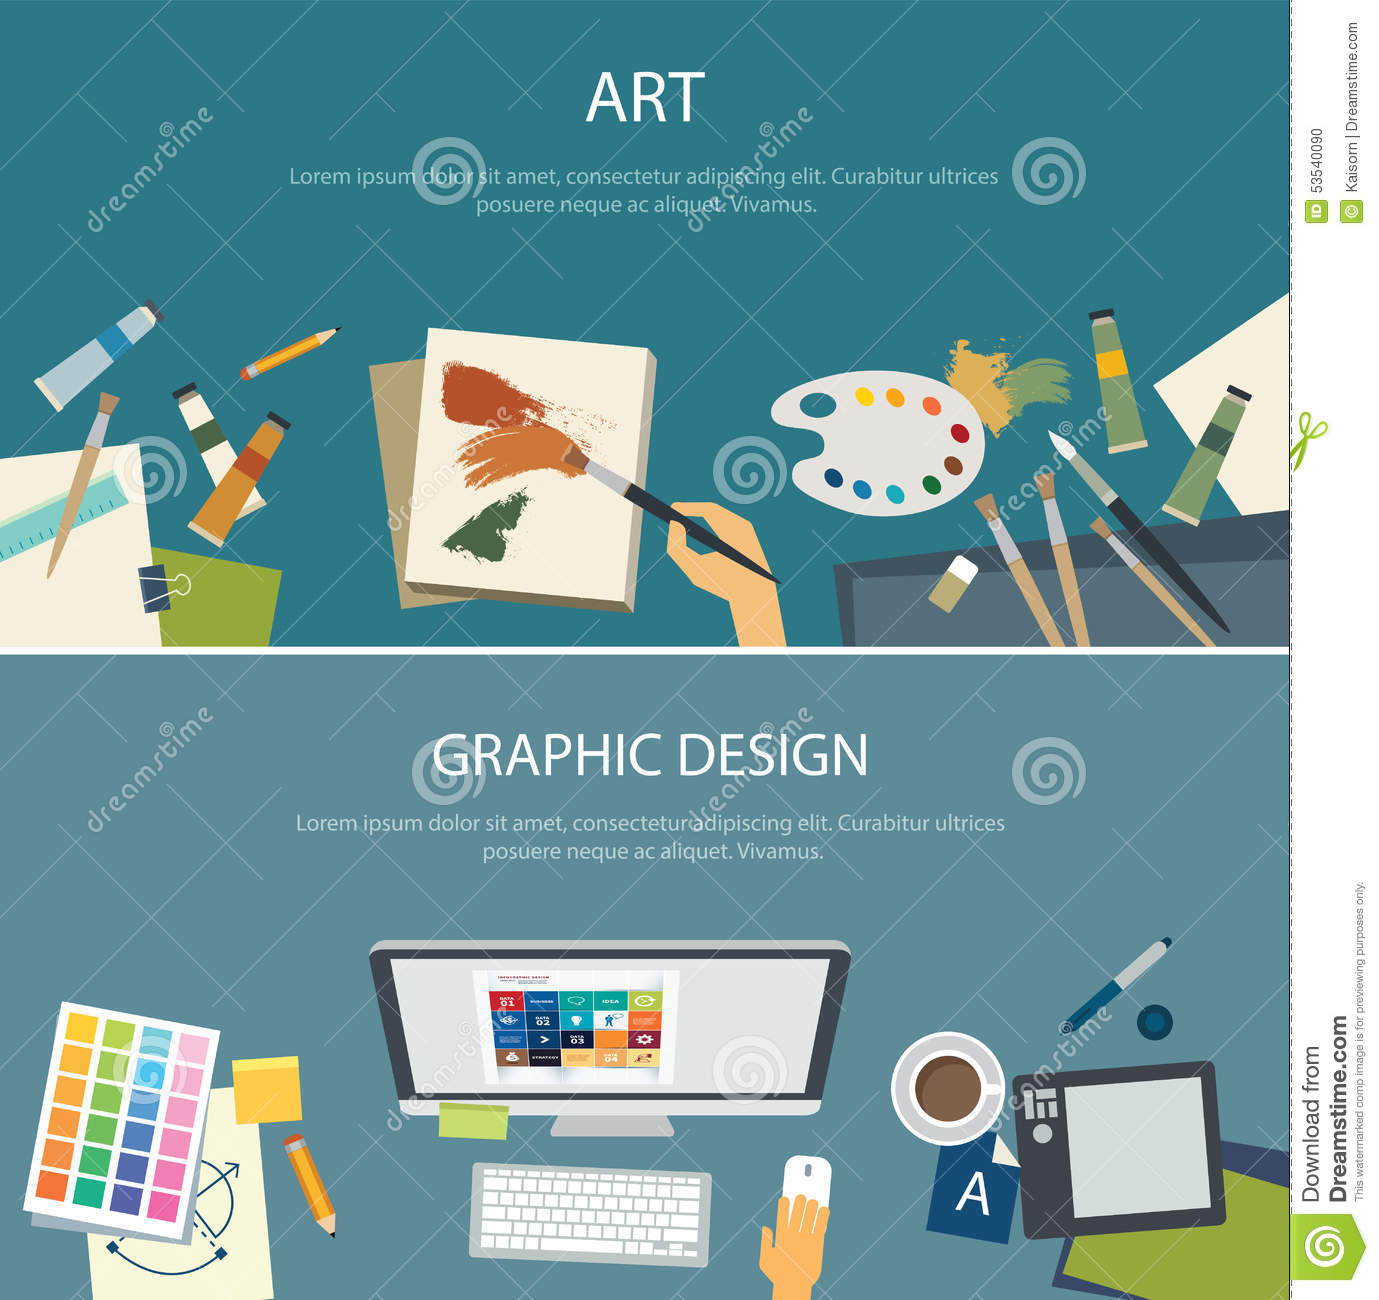 art-education-graphic-design-web-banner-flat-design-vector-53540090.jpg